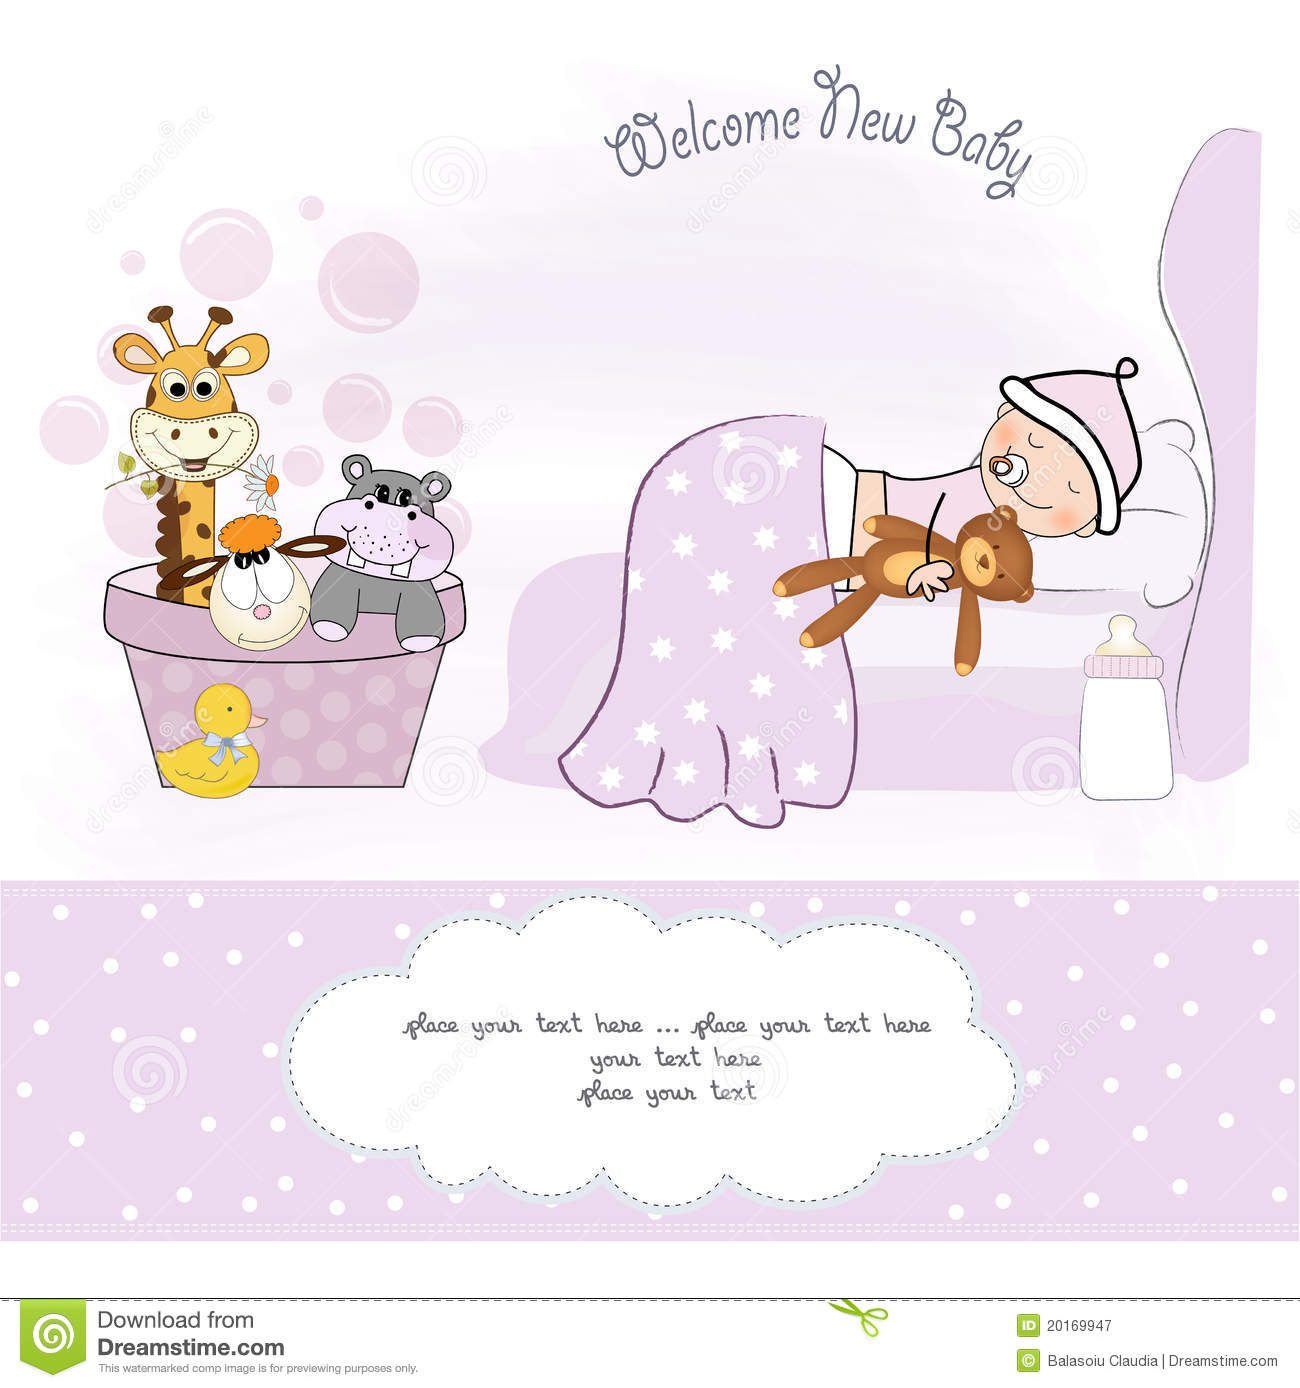 Welcome New Baby Girl Royalty Free Stock Photography - Image: 20169947